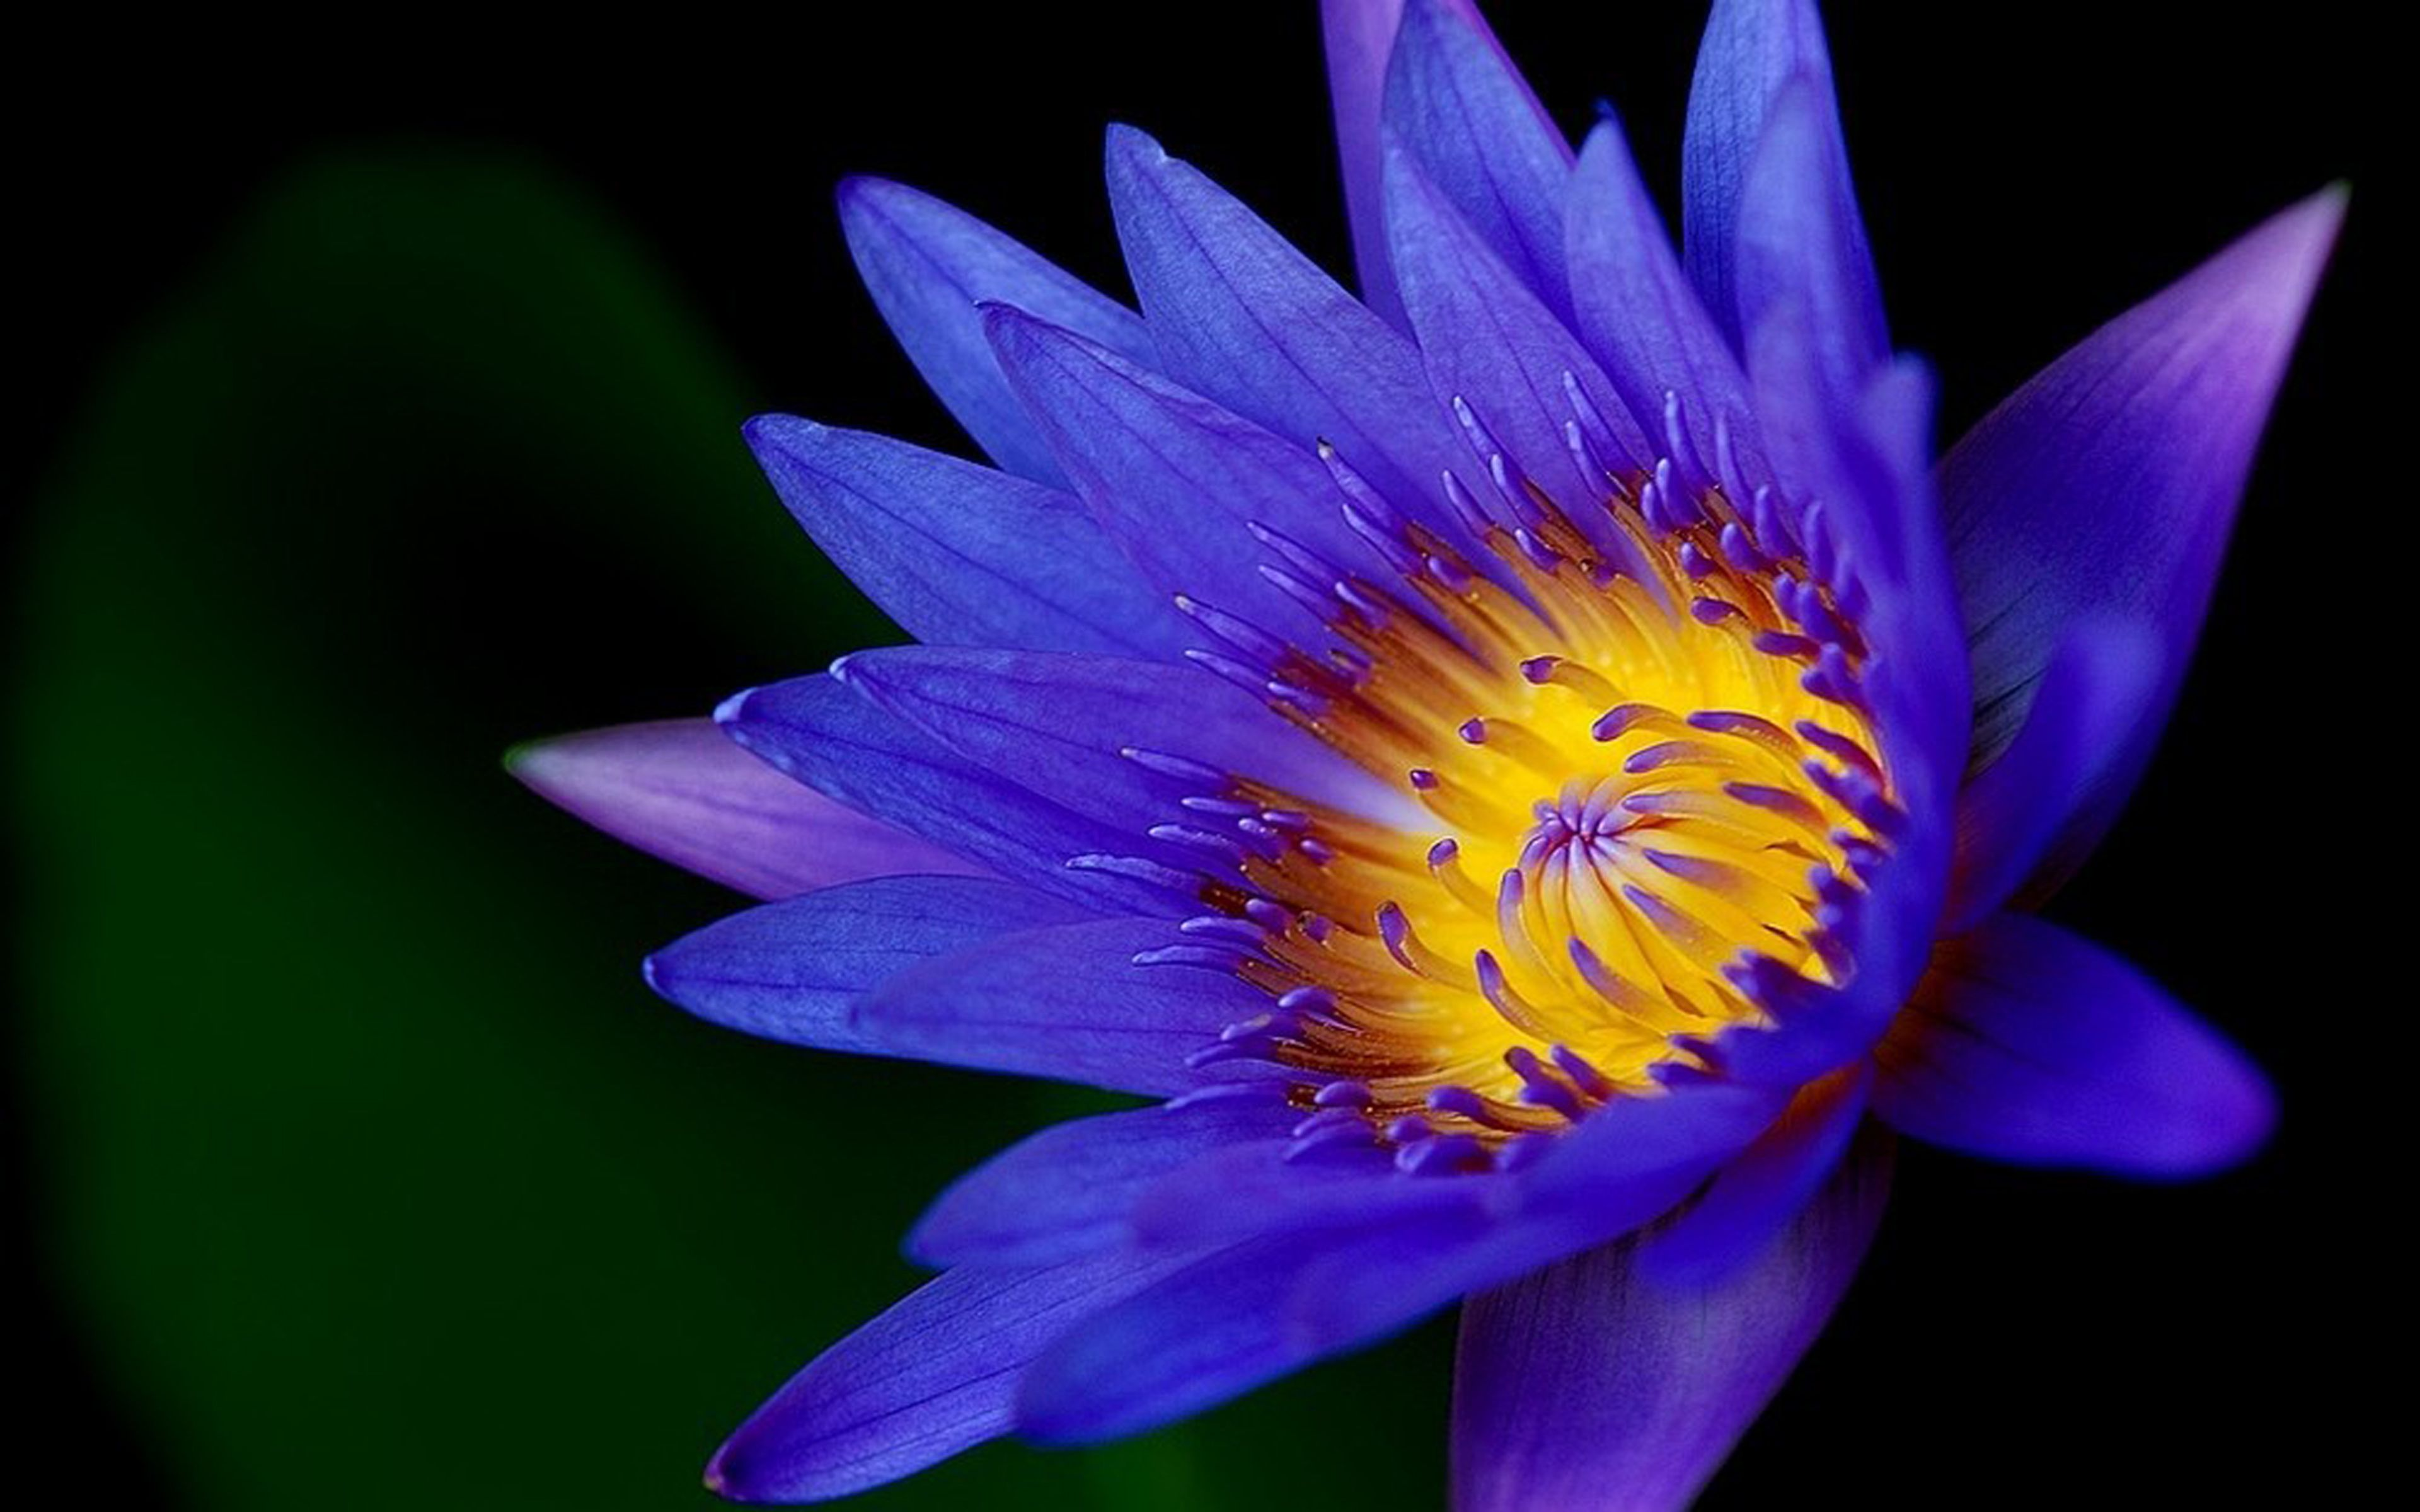 Blue Lotus Wallpapers - Top Free Blue Lotus Backgrounds ...